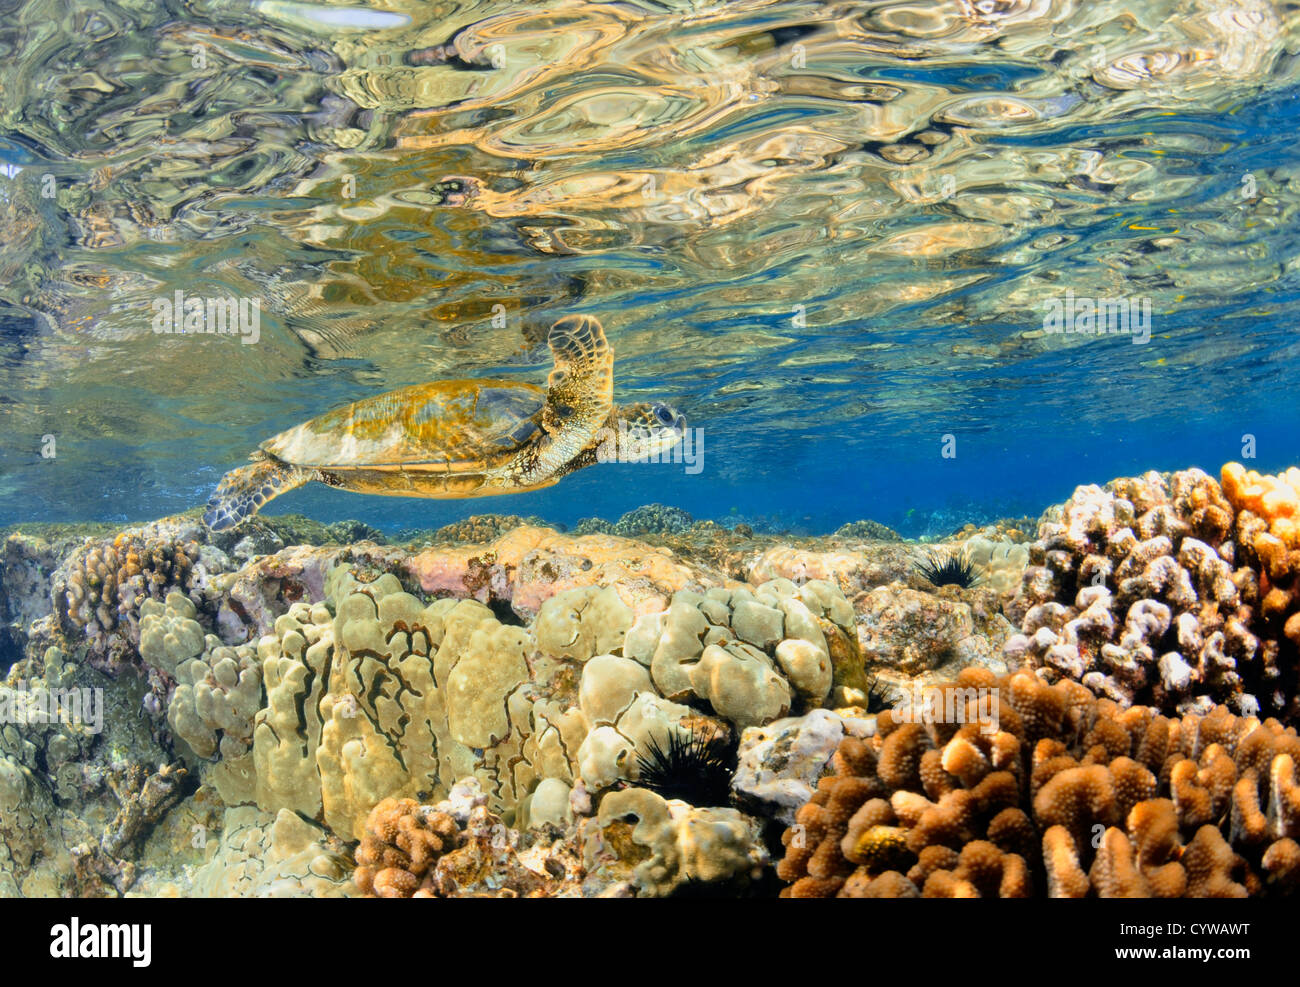 Juvenile green sea turtle, Chelonia mydas, swims in shallow coral reef, Captain Cook, Big Island, Hawaii, North Stock Photo